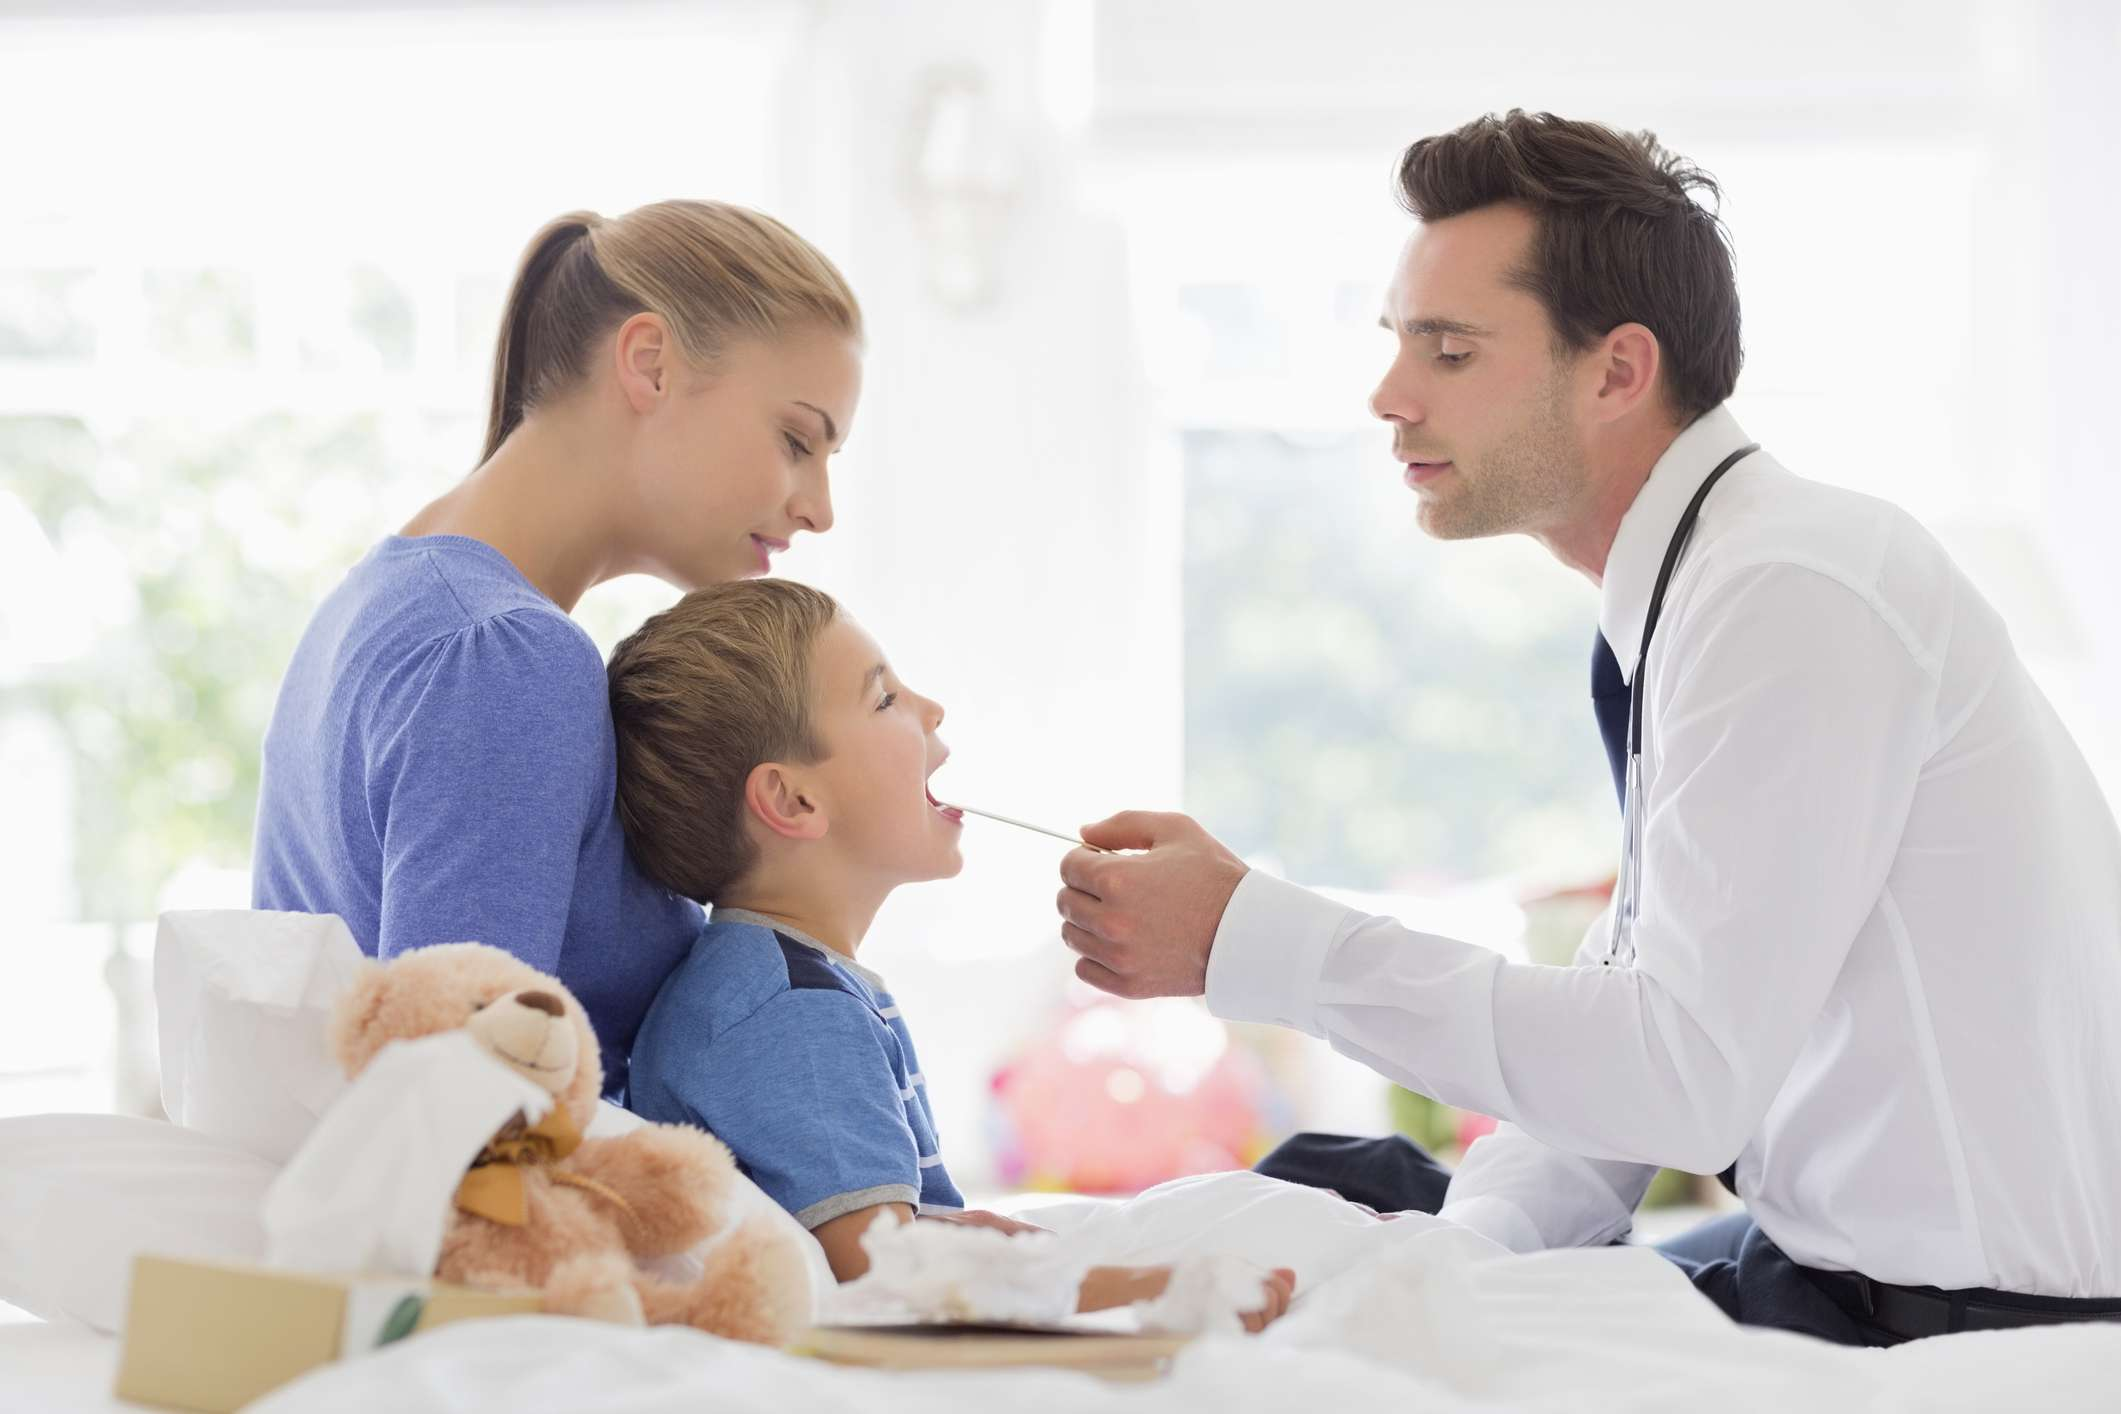 A doctor checking a child's throat